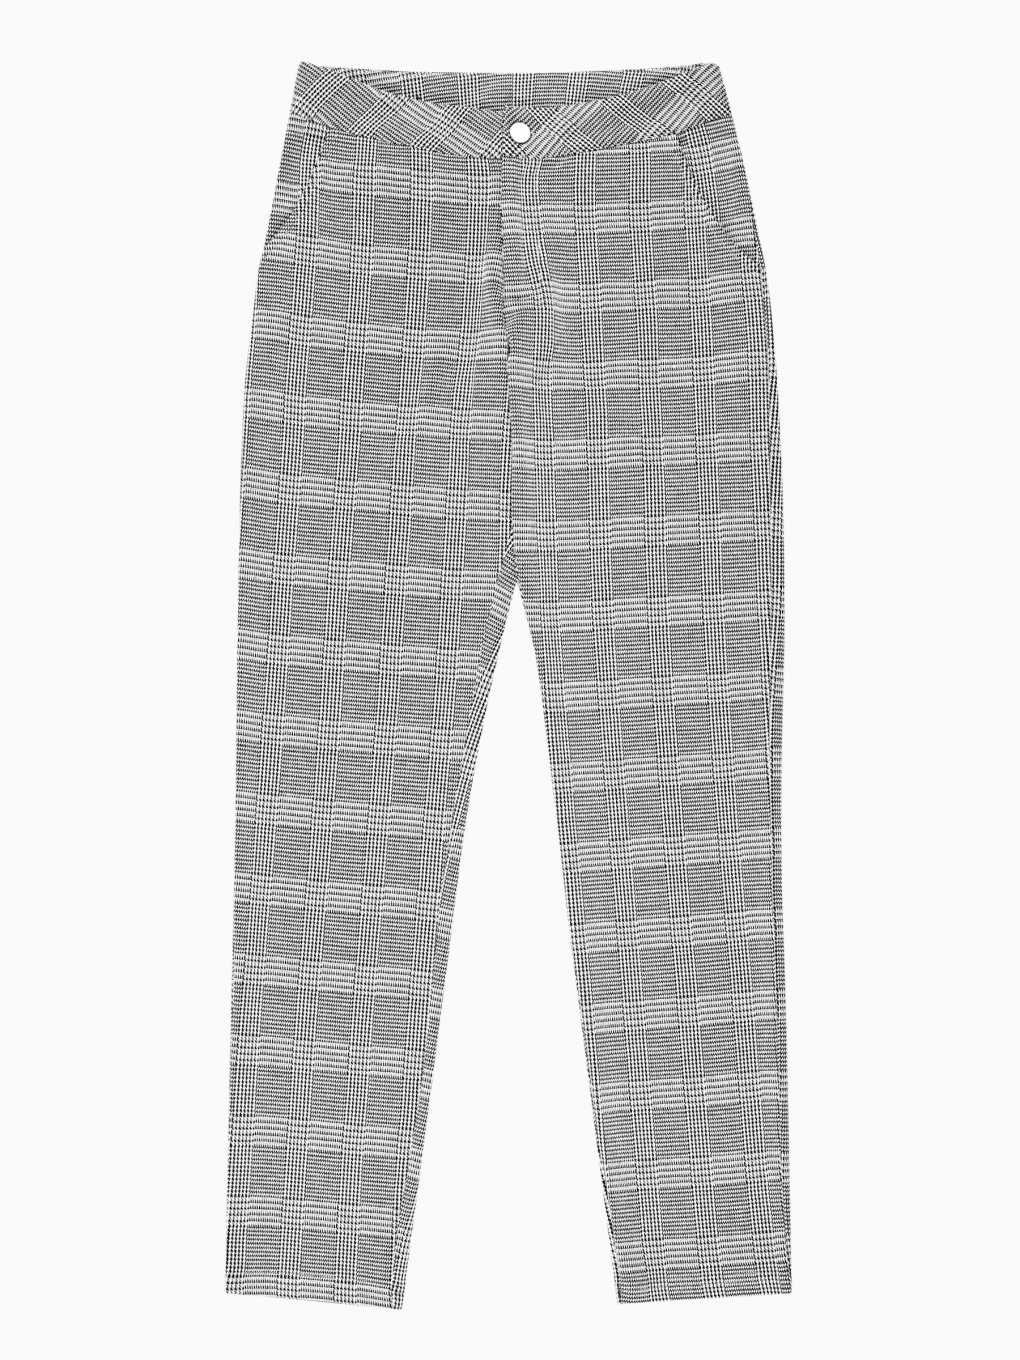 STRAIGHT SLIM PLAID TROUSERS